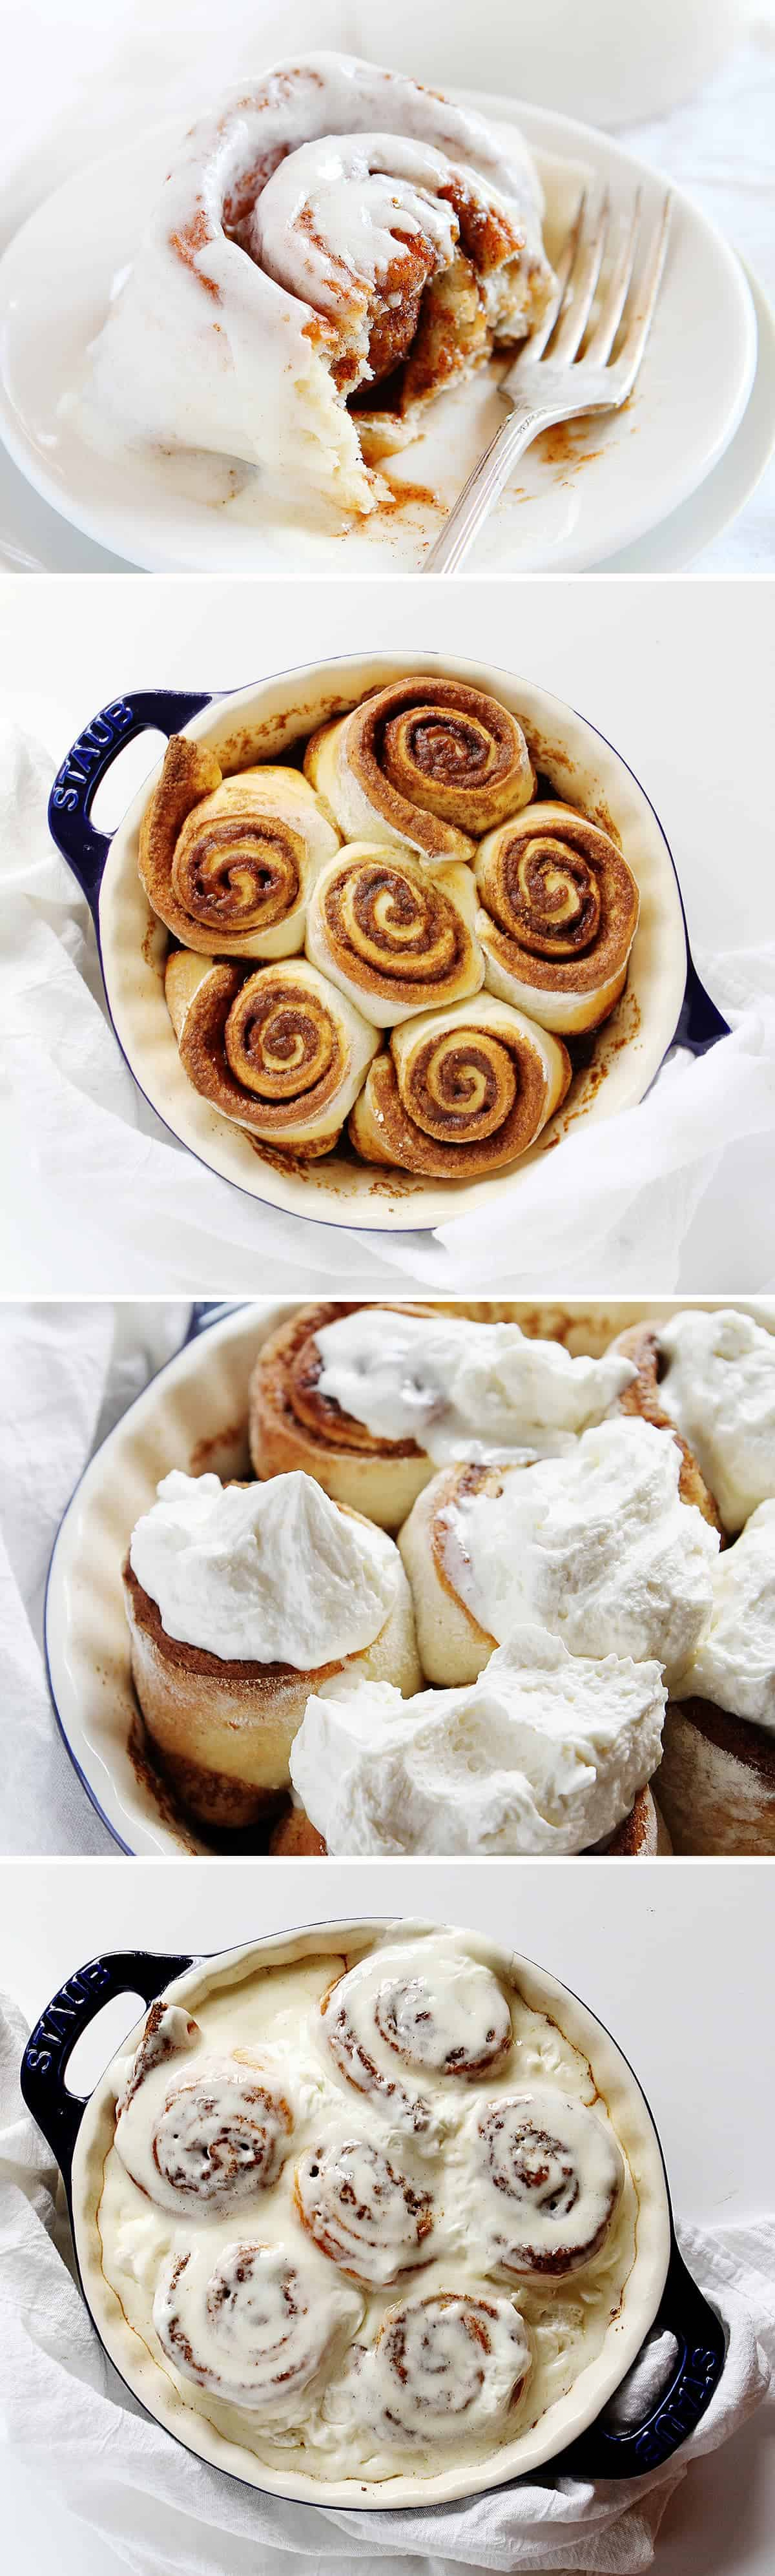 Fastest Cinnamon Rolls Ever!